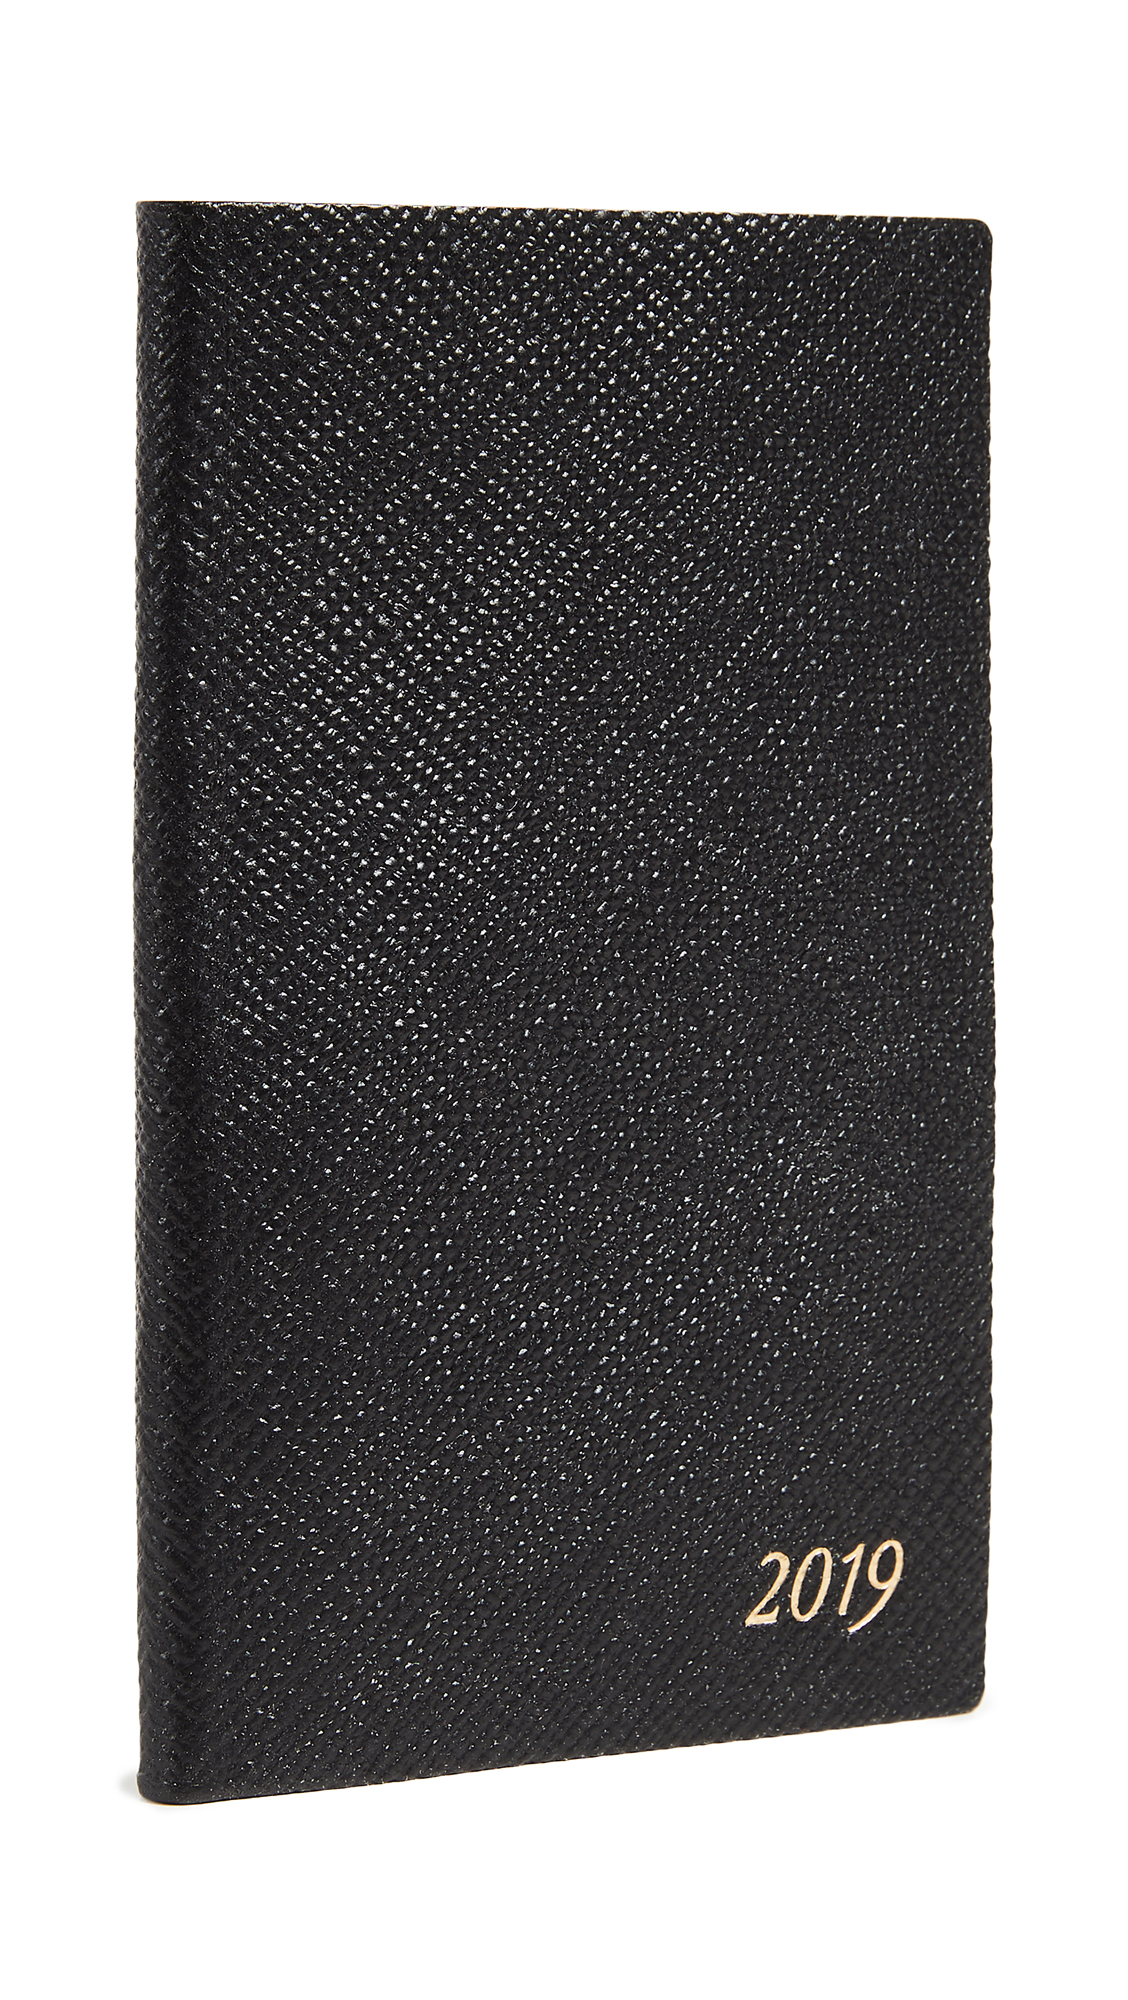 2019 Diary Panama Notebook in Black